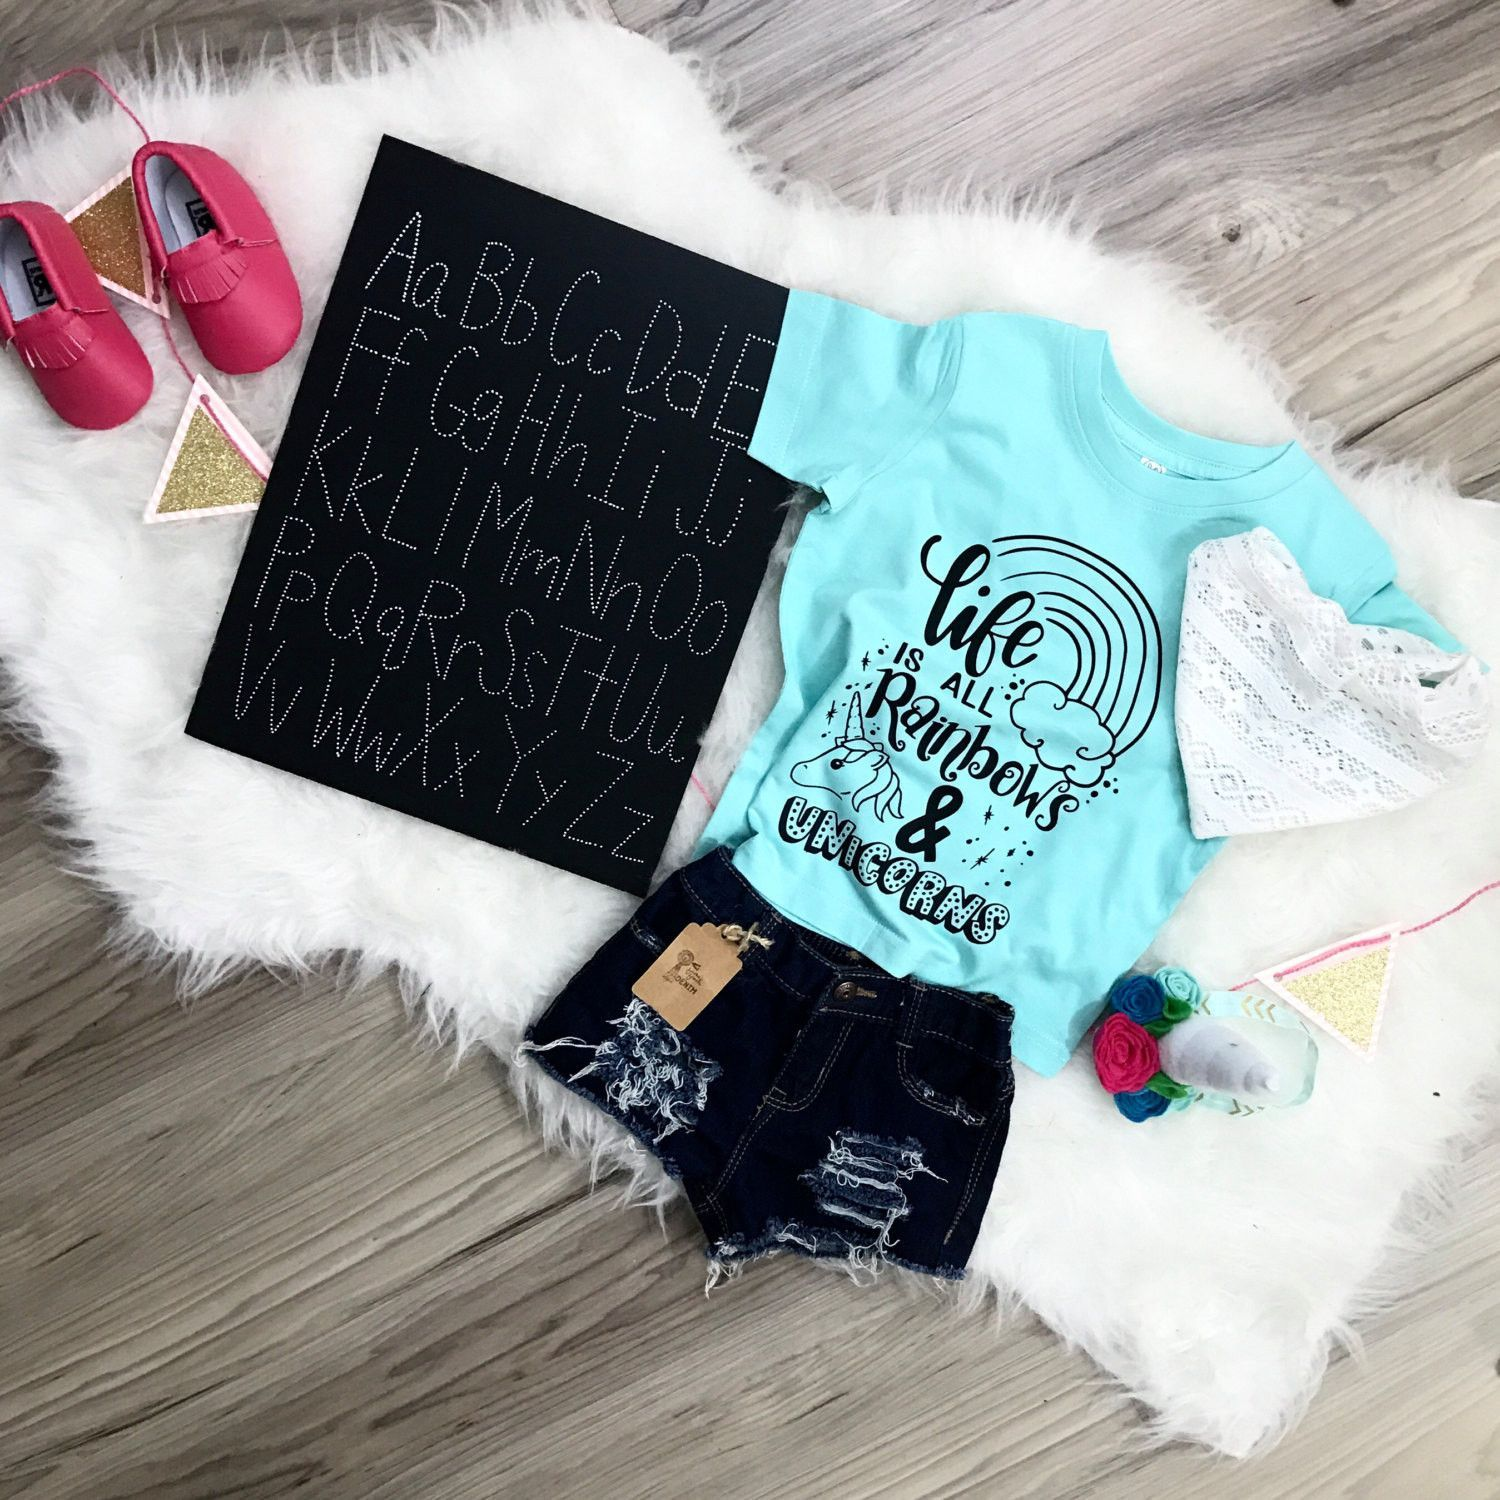 1687d0d2888 Trendy Kid Tee Life is All Rainbows and Unicorns inspirational  anti-bullying happy positive shirts quote toddler Infant Shirt Bodysuit Tees